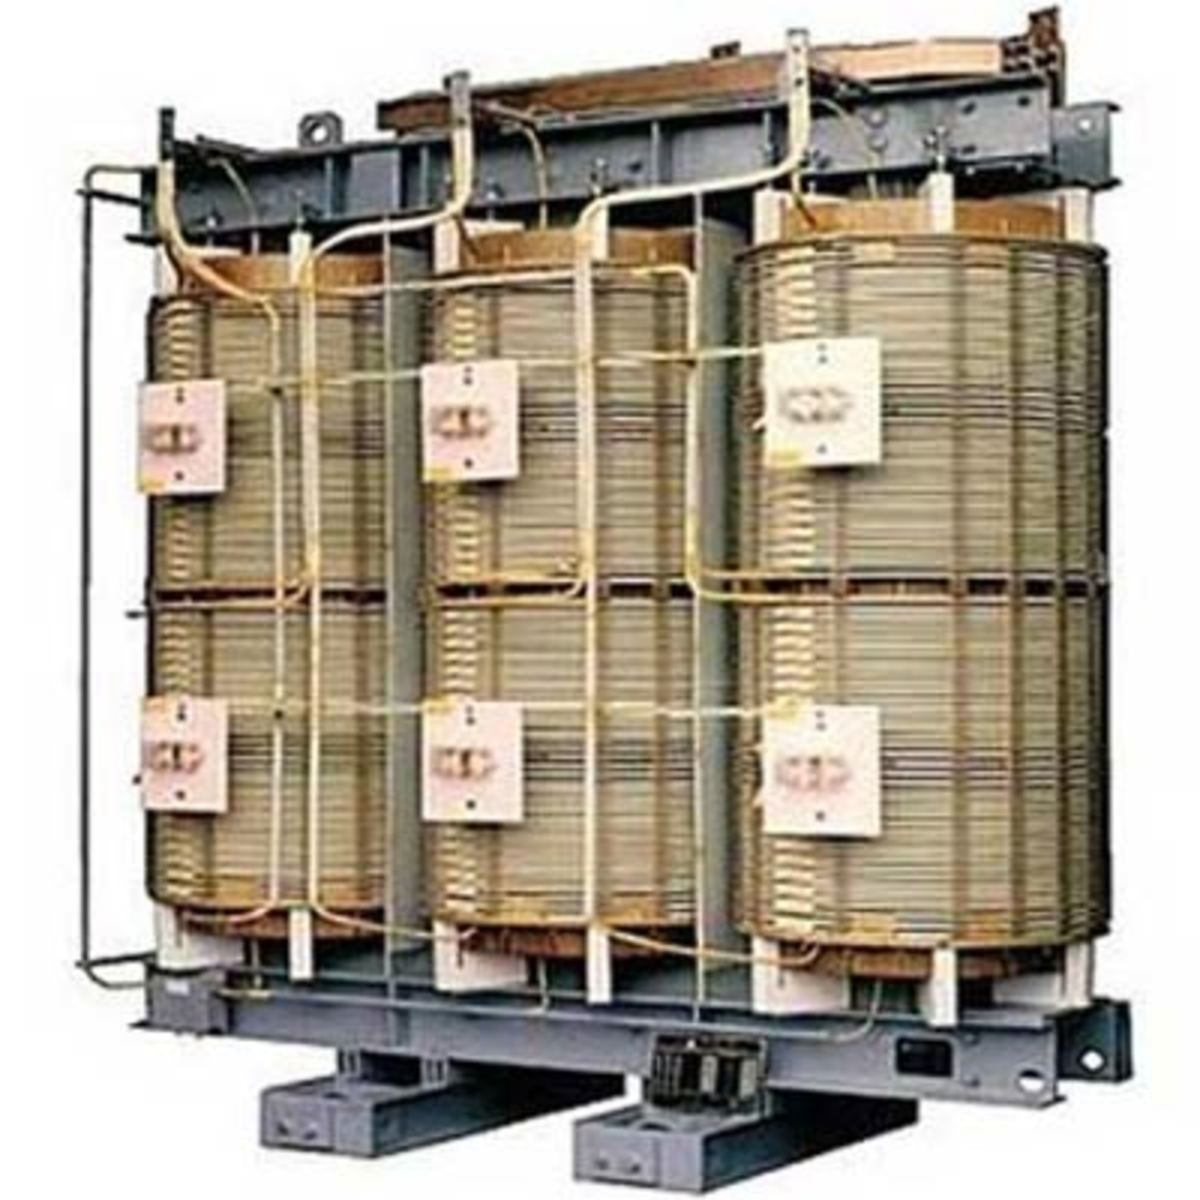 Paper insulation is used only in oil immersed transformers. In air cooled ones varnish insulated coils are used.